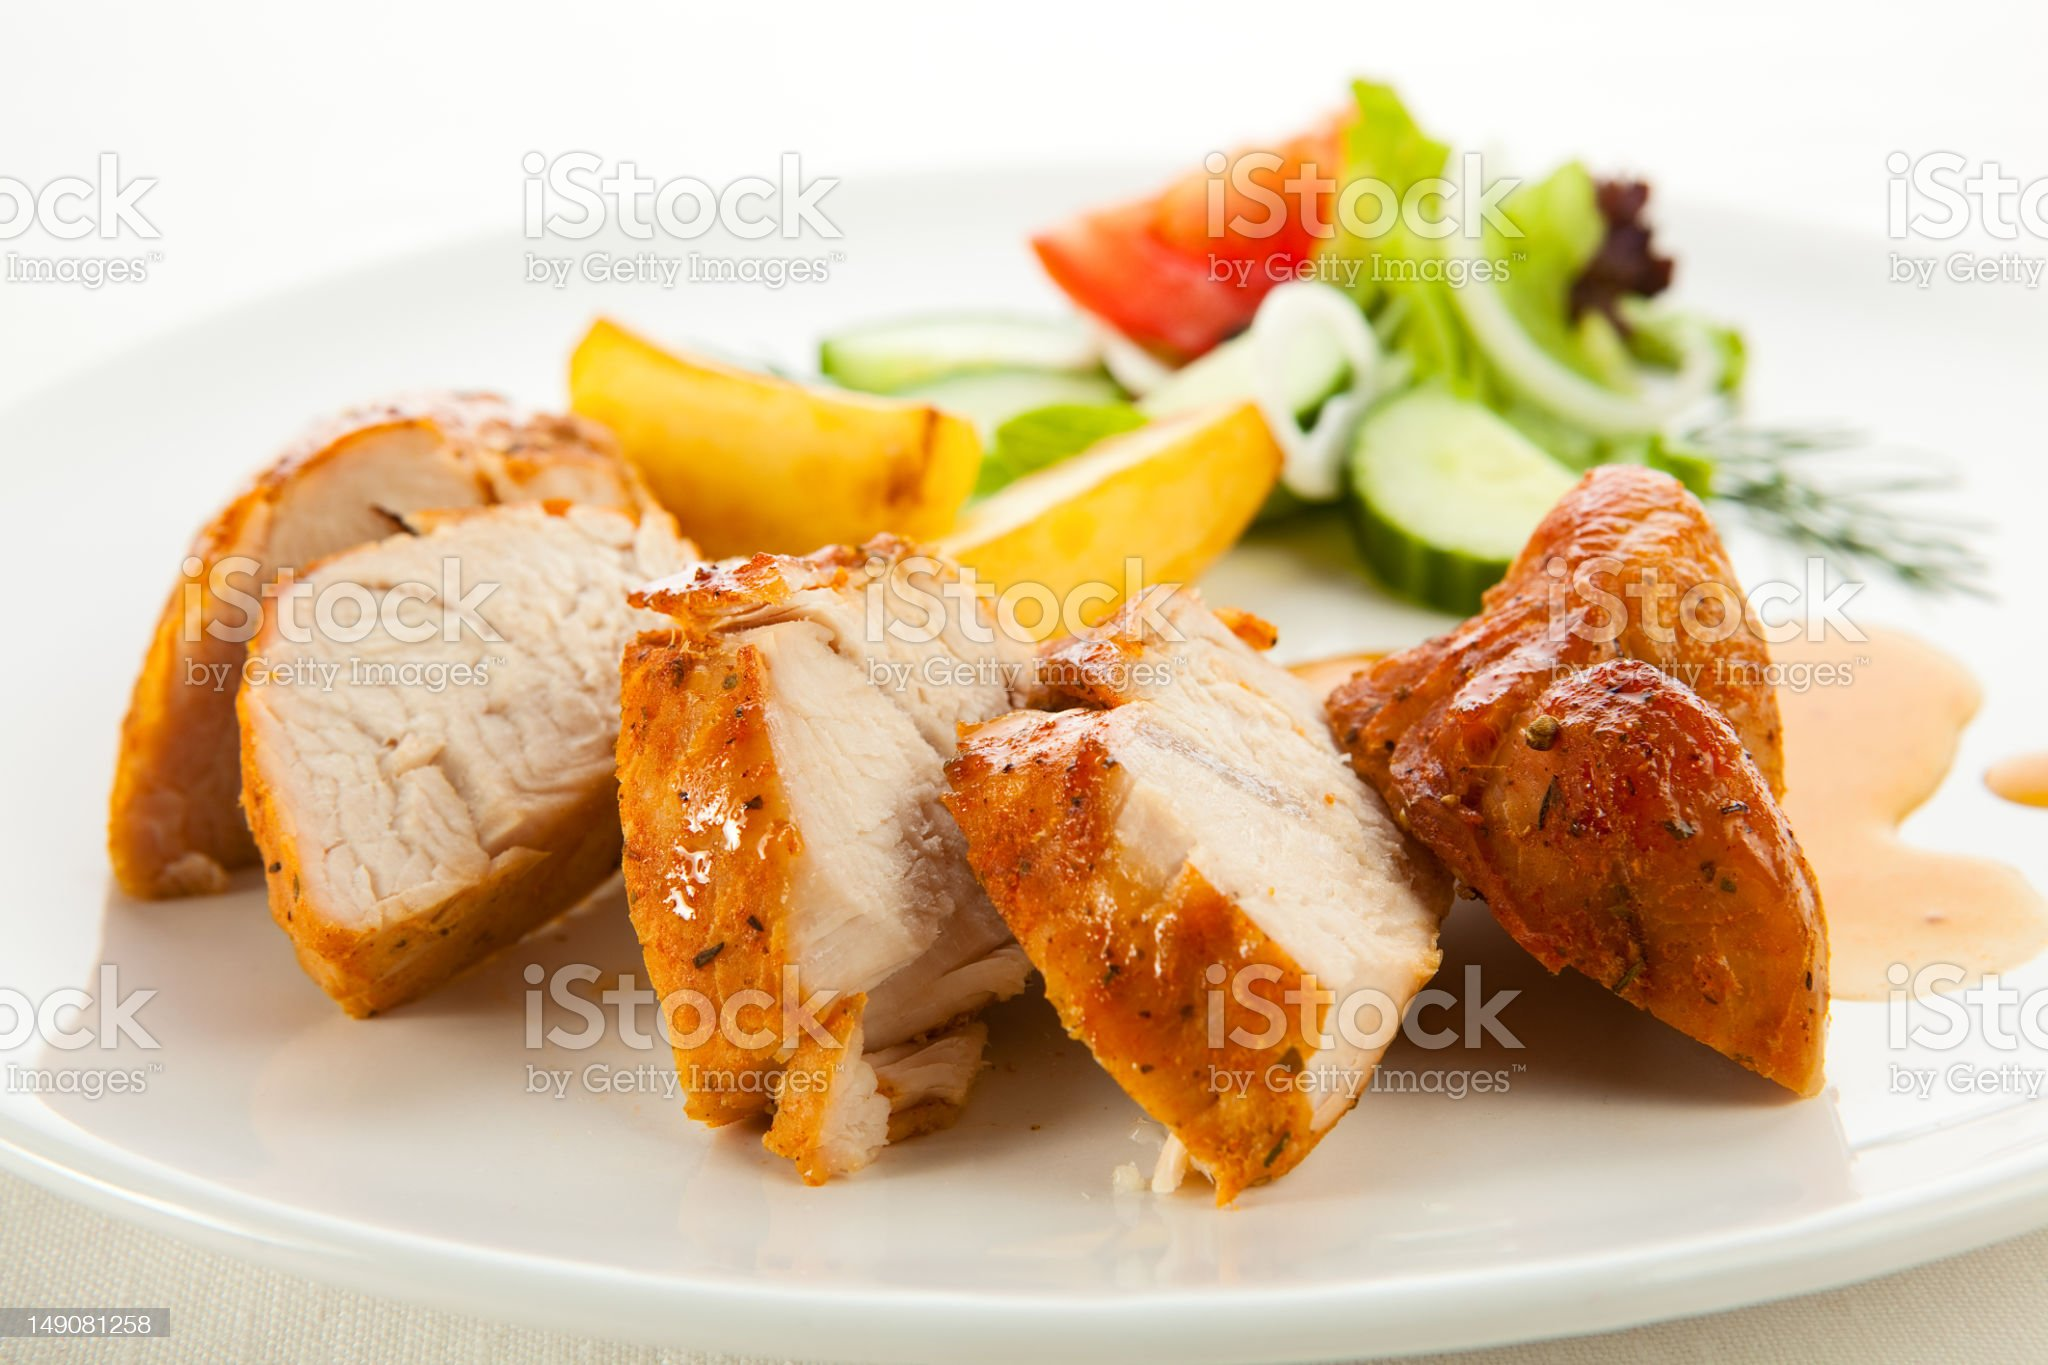 A plate of chicken and vegetables royalty-free stock photo